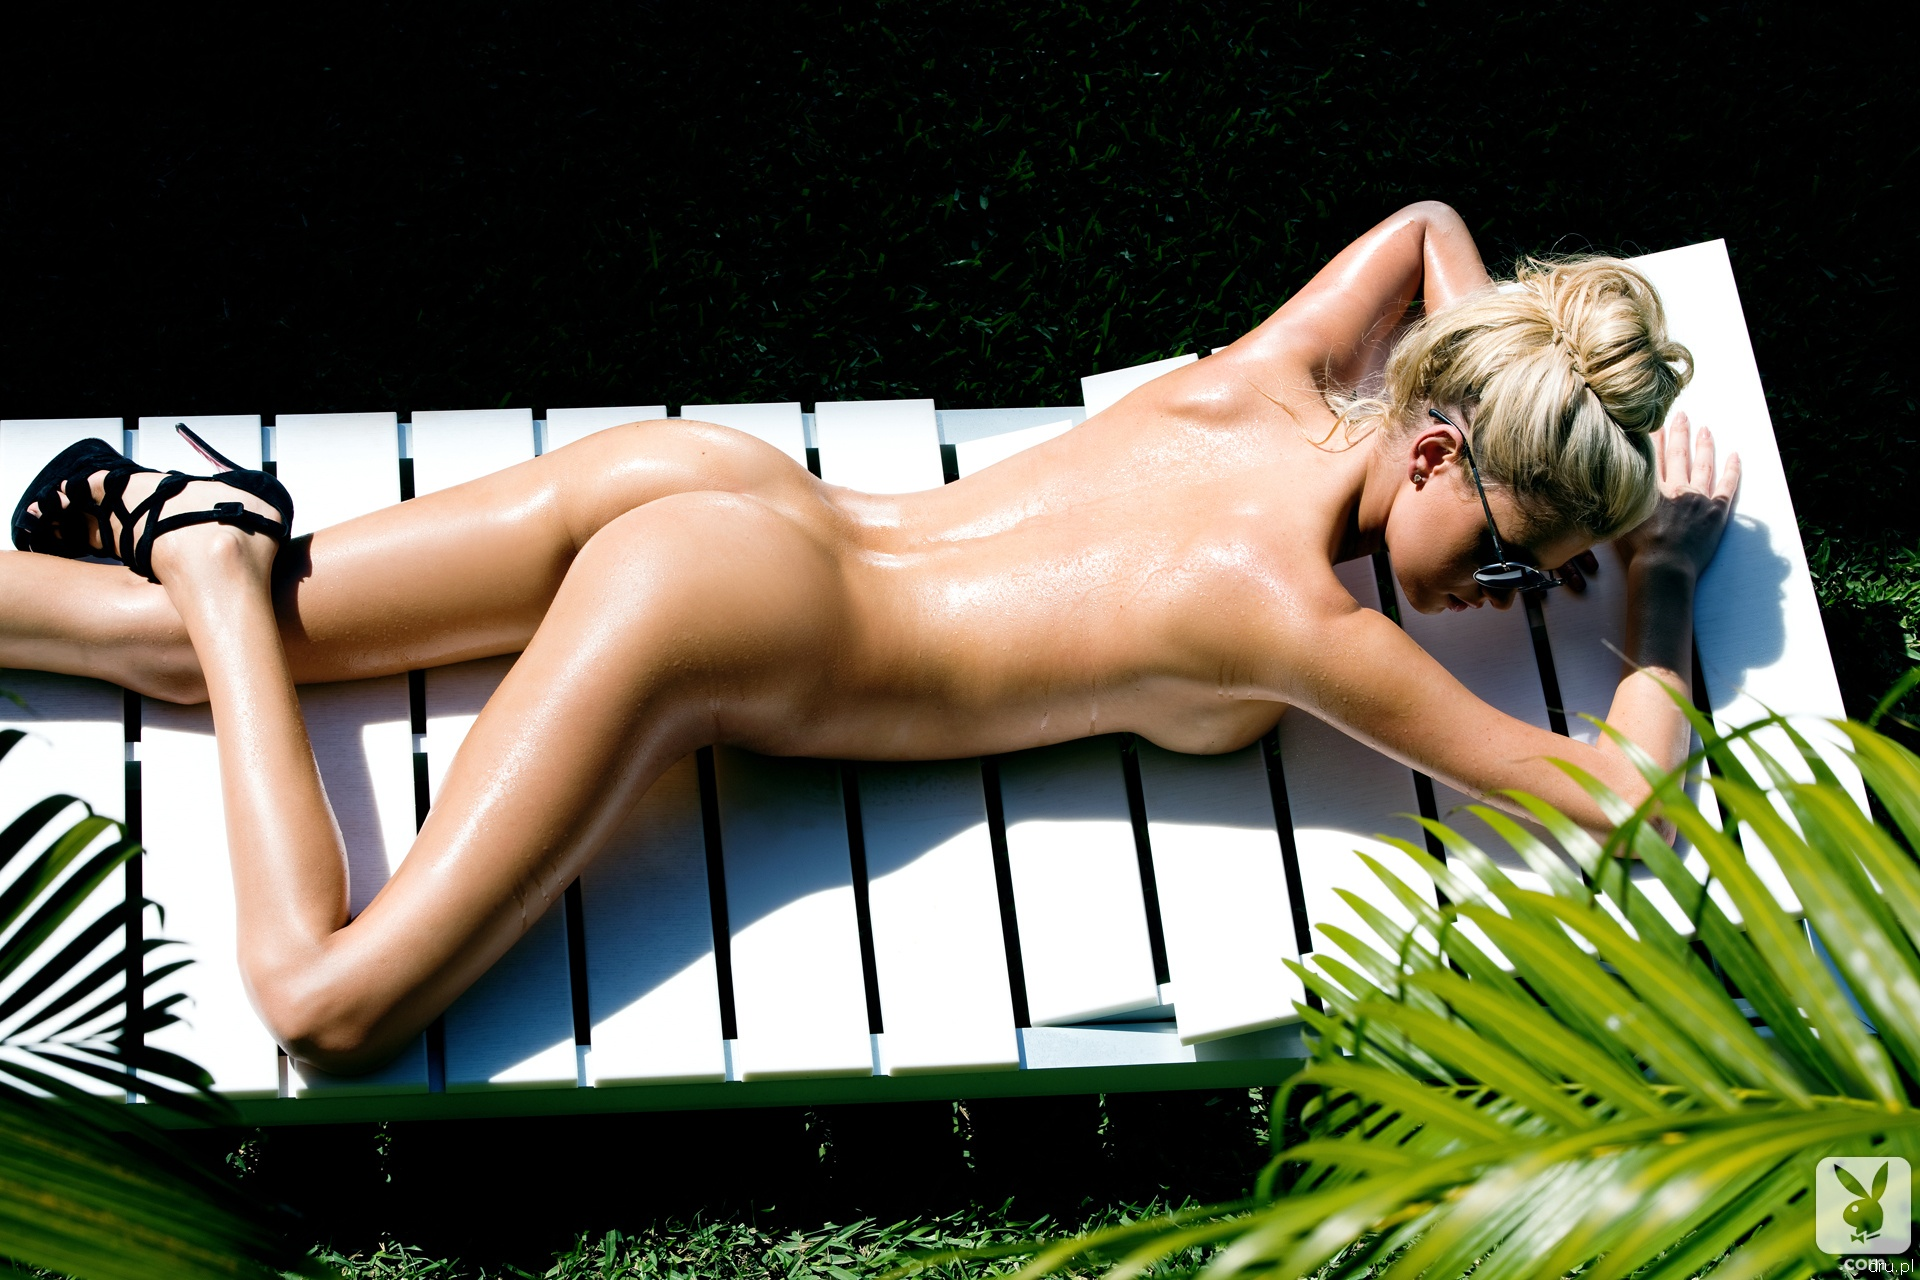 Kristin holt nude, wife butt flash